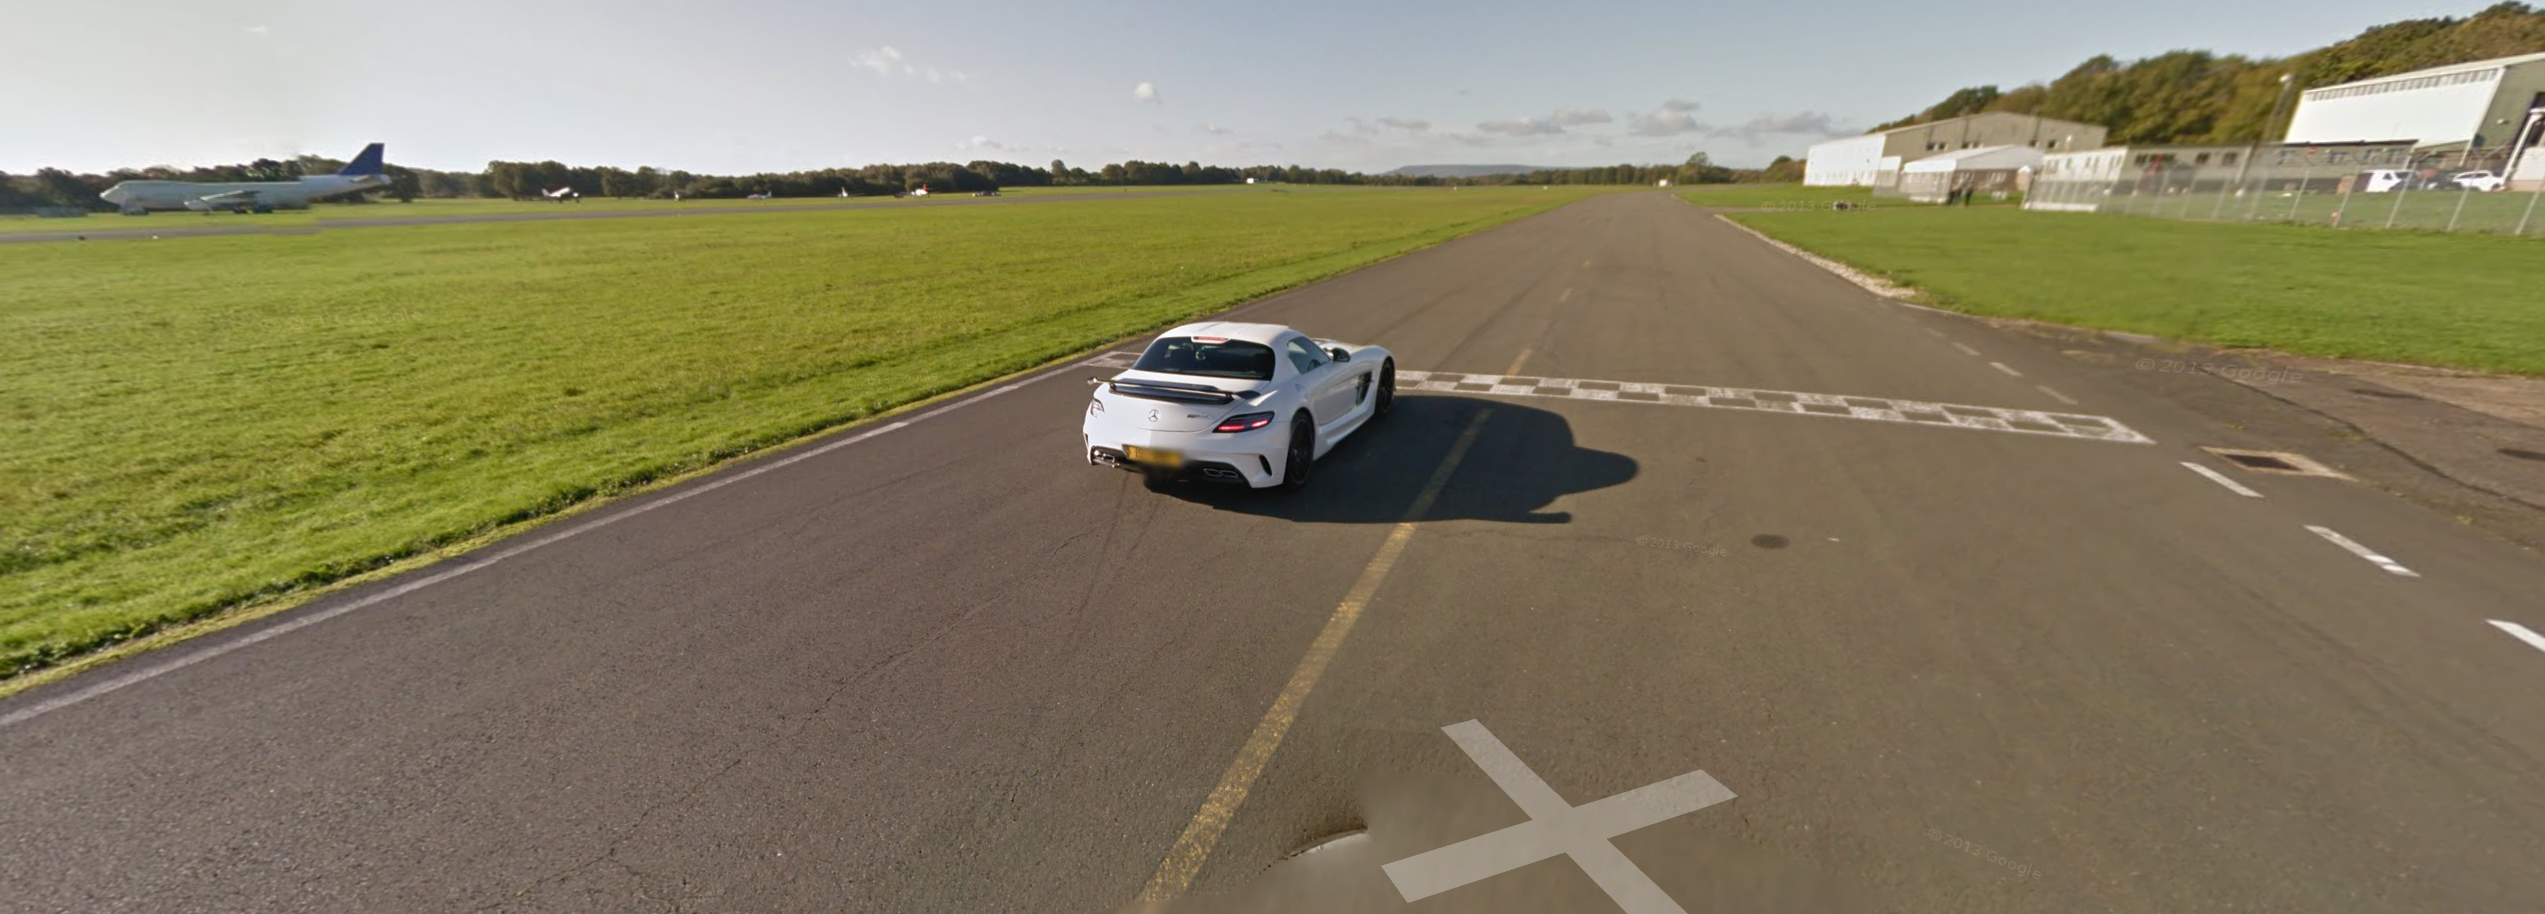 Explore the Top Gear test track with Google's new 360-degree Street View photos